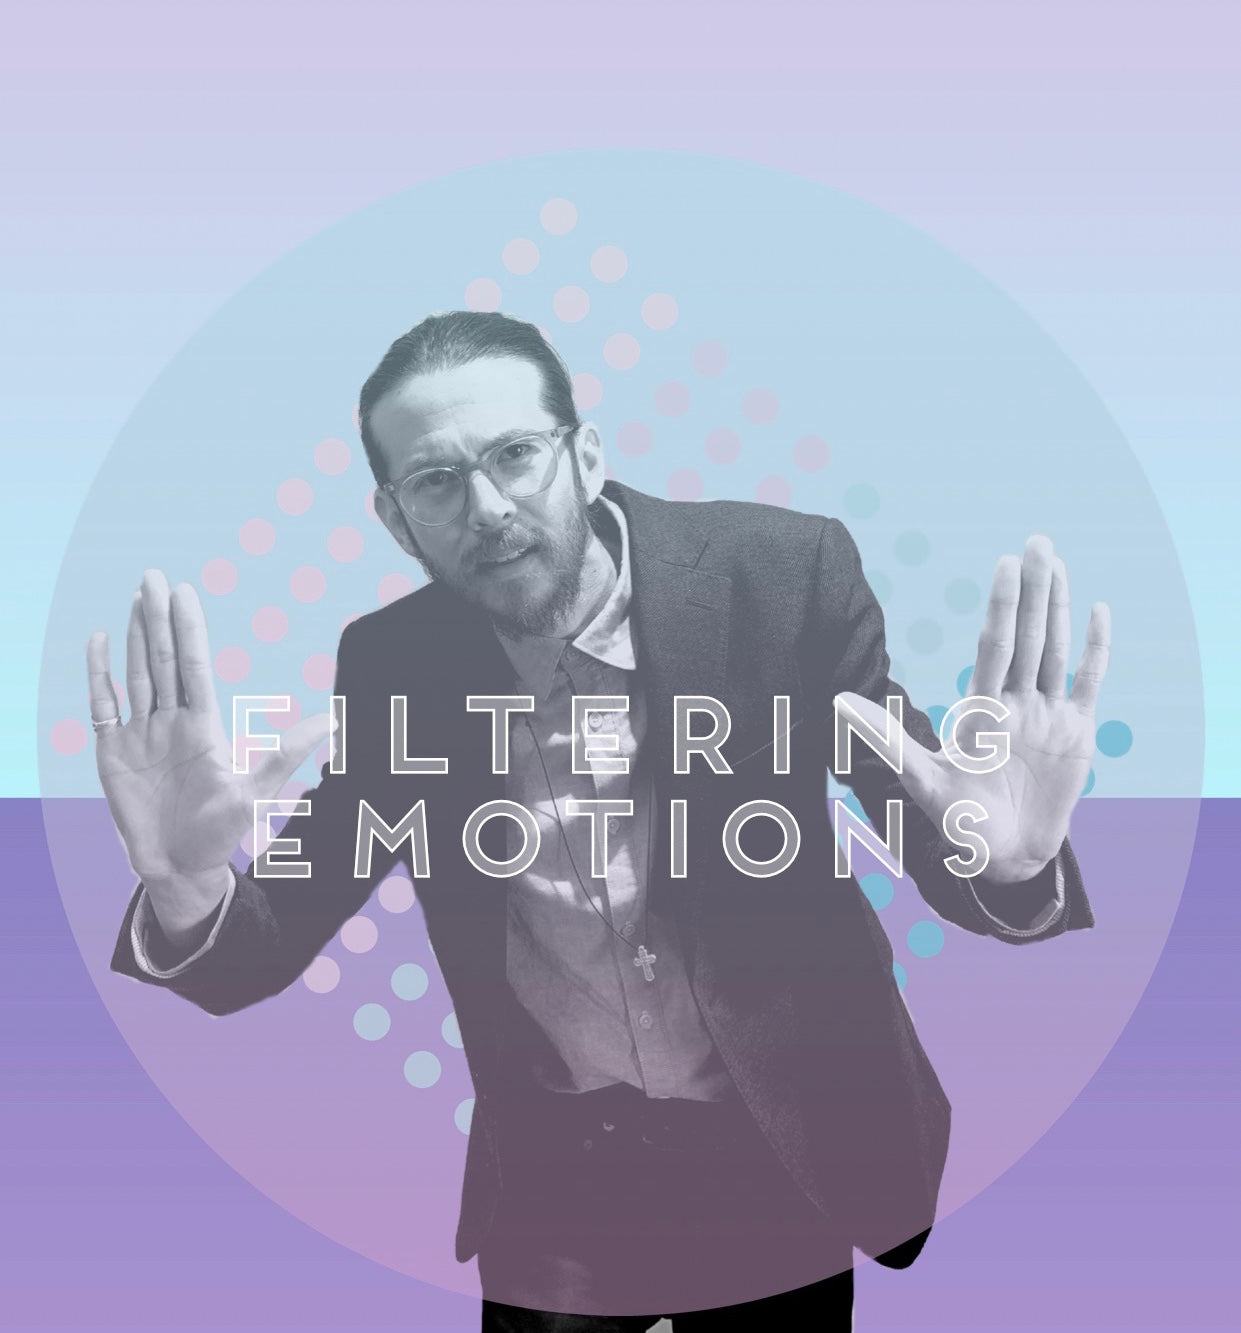 Doctor Motley - Filtering Emotions